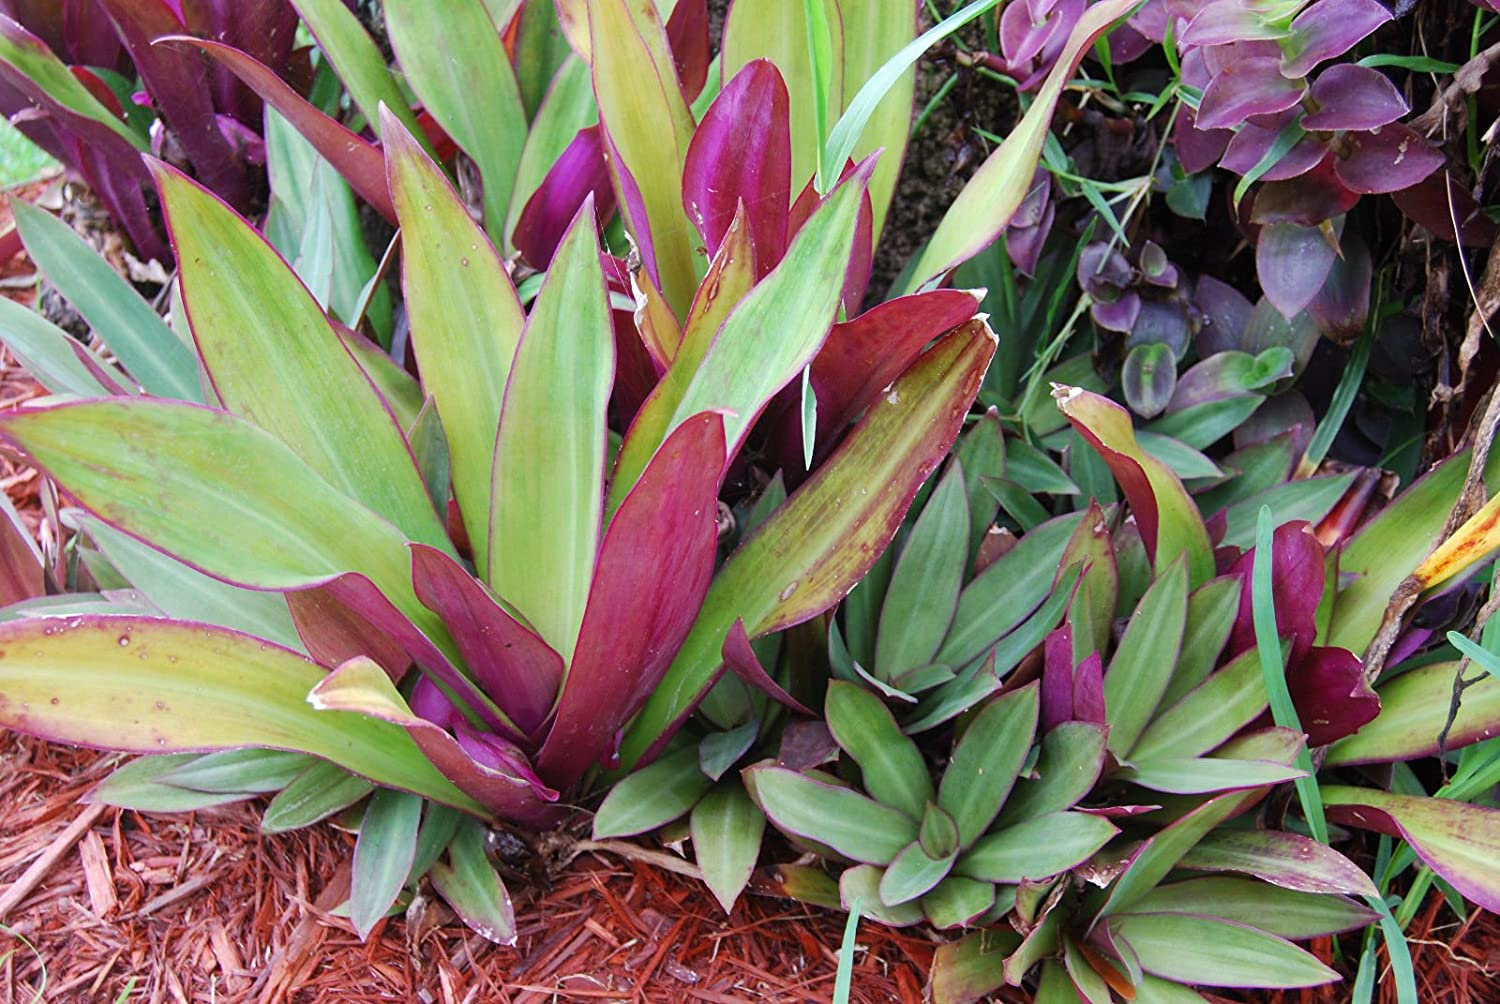 Oyster Plant Tradescantia Spathacea Rhoeo Boatlily Purple//Green